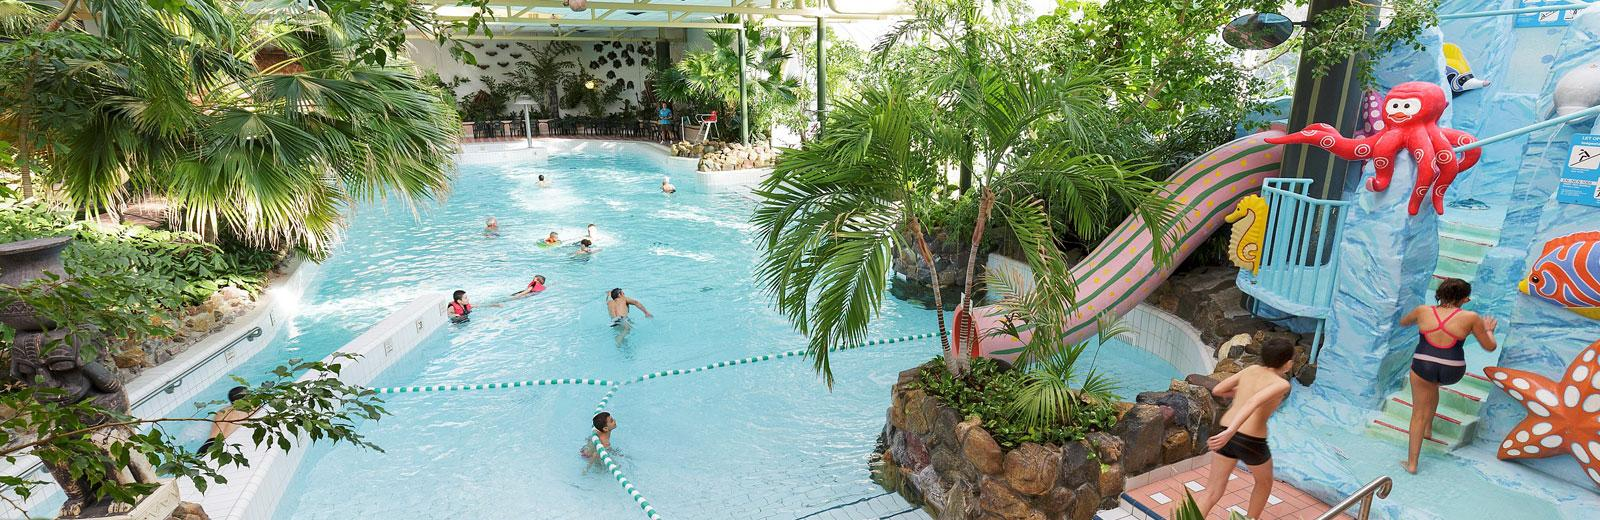 Centerparcs Drenthe Zwembad Center Parcs Limburgse Peel Topper In Limburg Reviews Deals